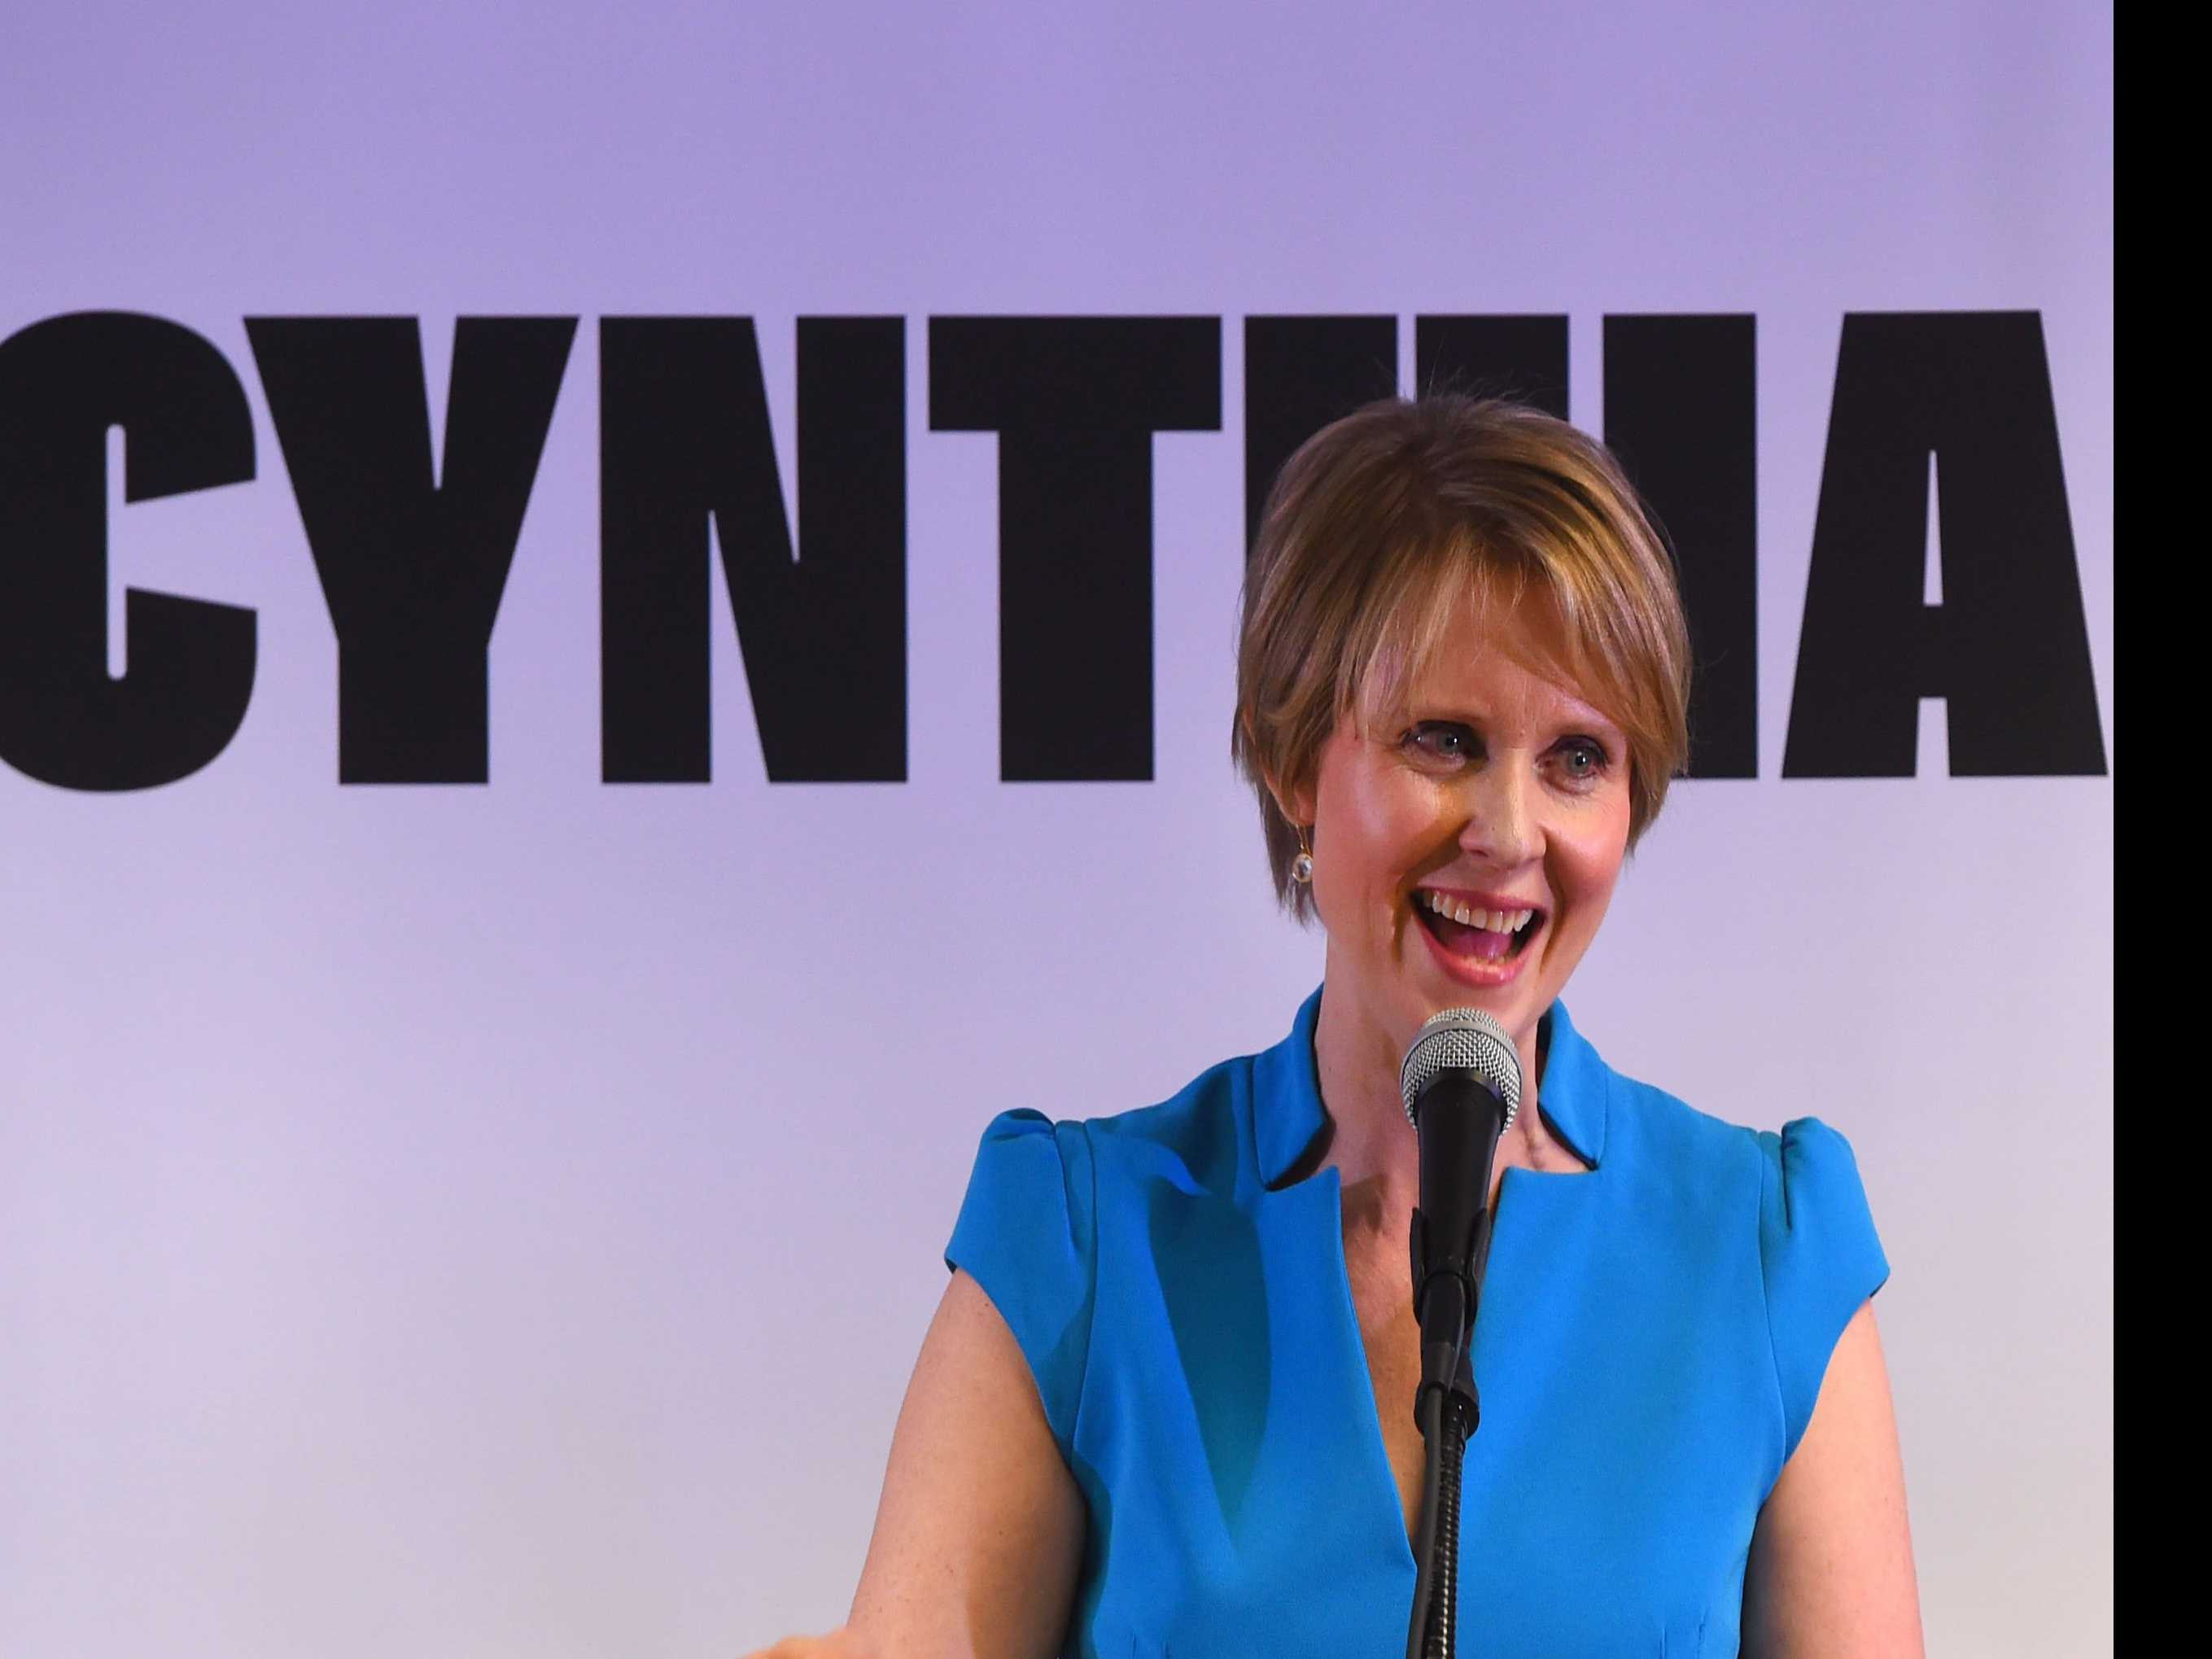 Activist Party Backs Cynthia Nixon in NY Governor's Race